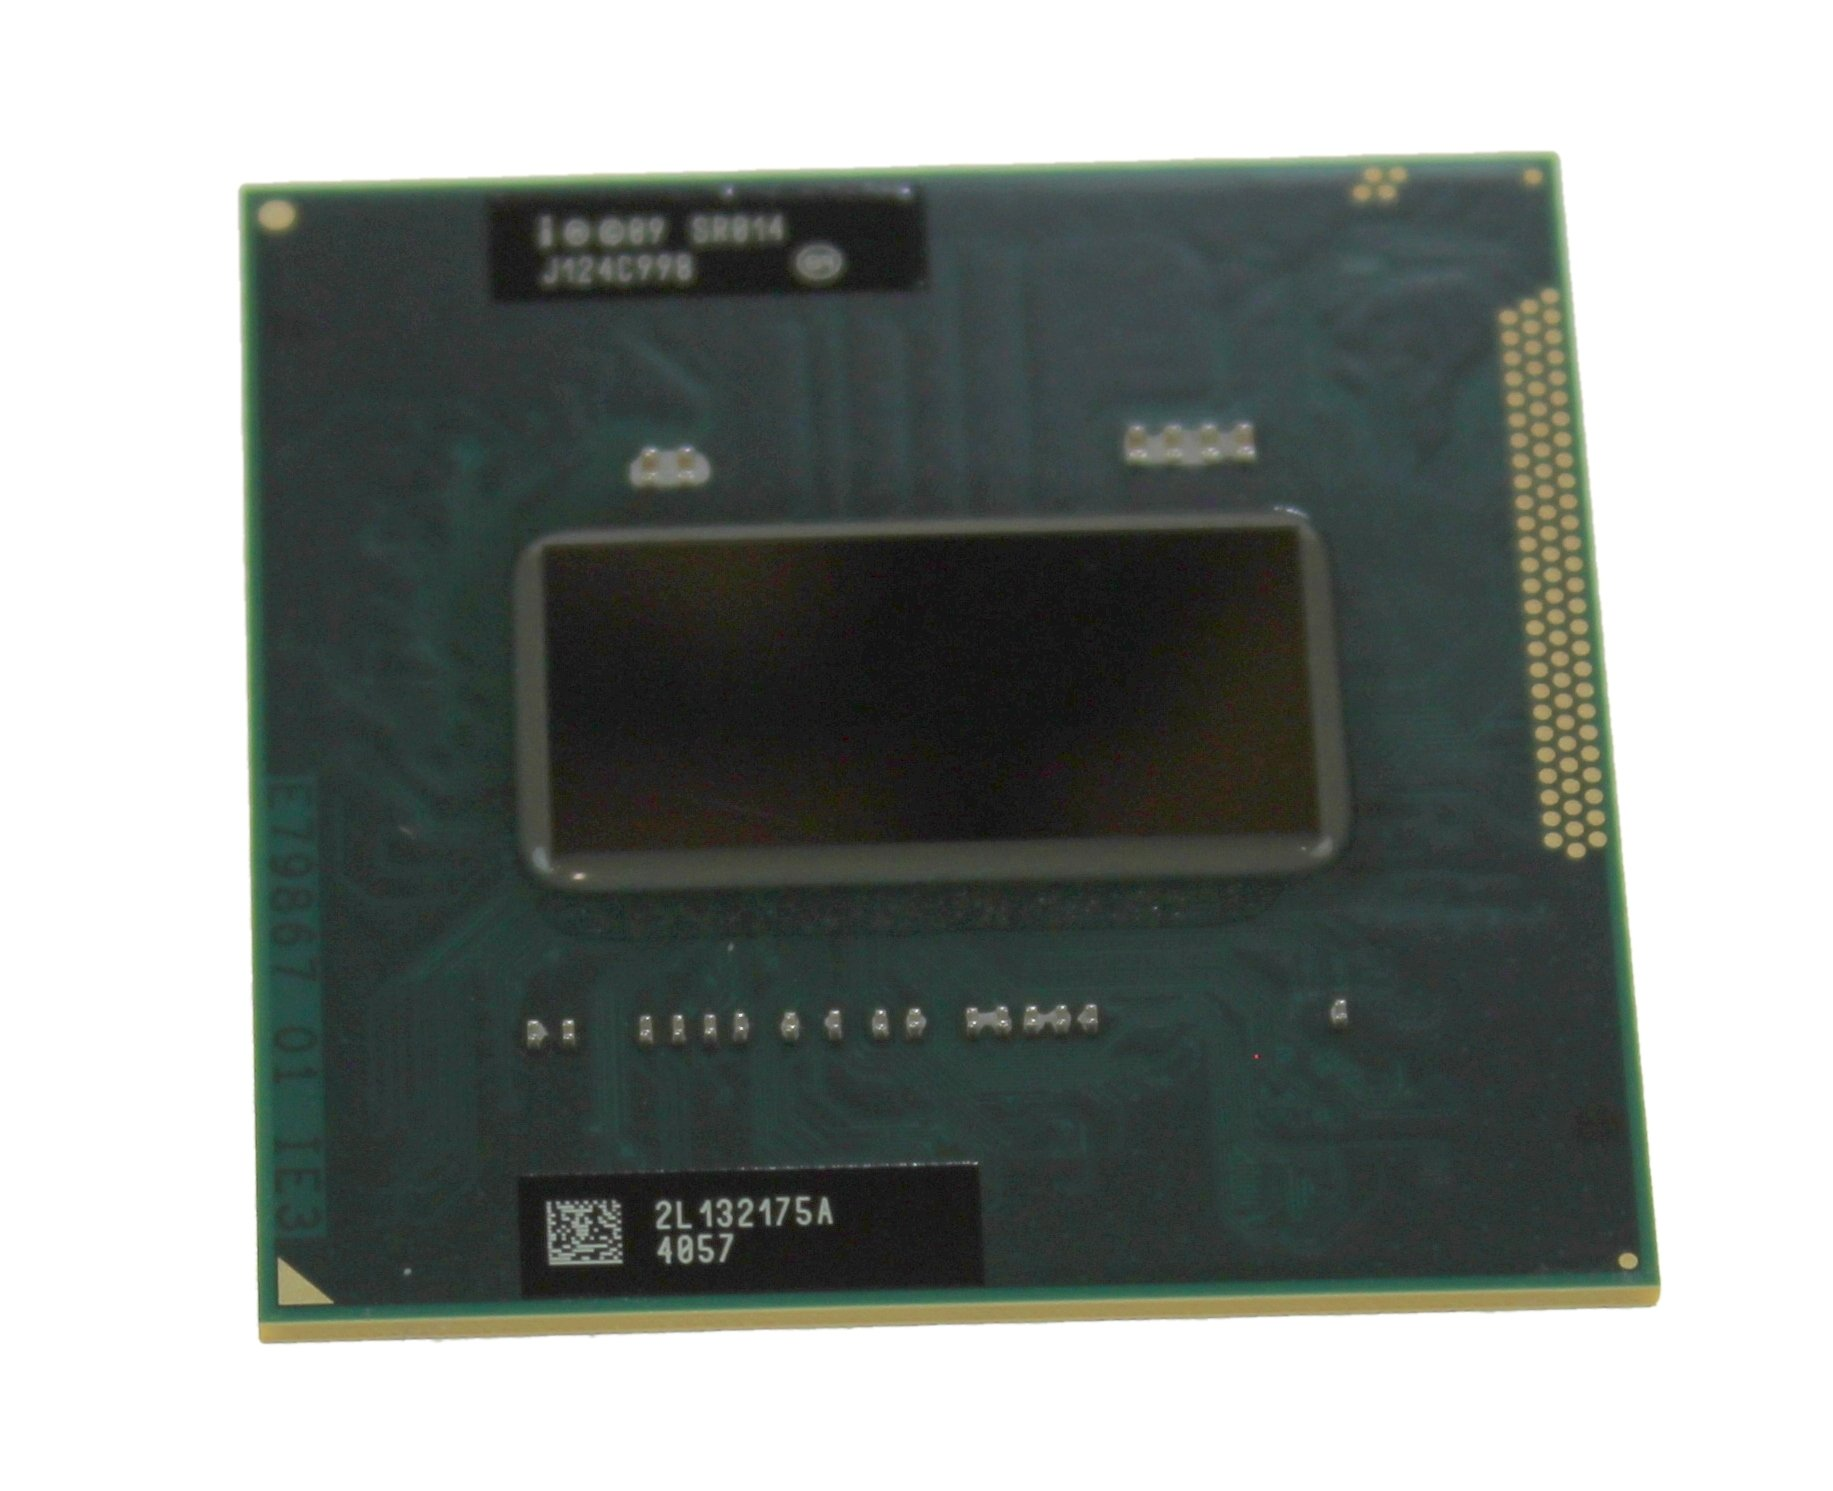 Intel Core i7-2720QM SR014 2.2GHz 6MB Quad-core Mobile CPU Processor Socket G2 988-pin by Intel (Image #1)